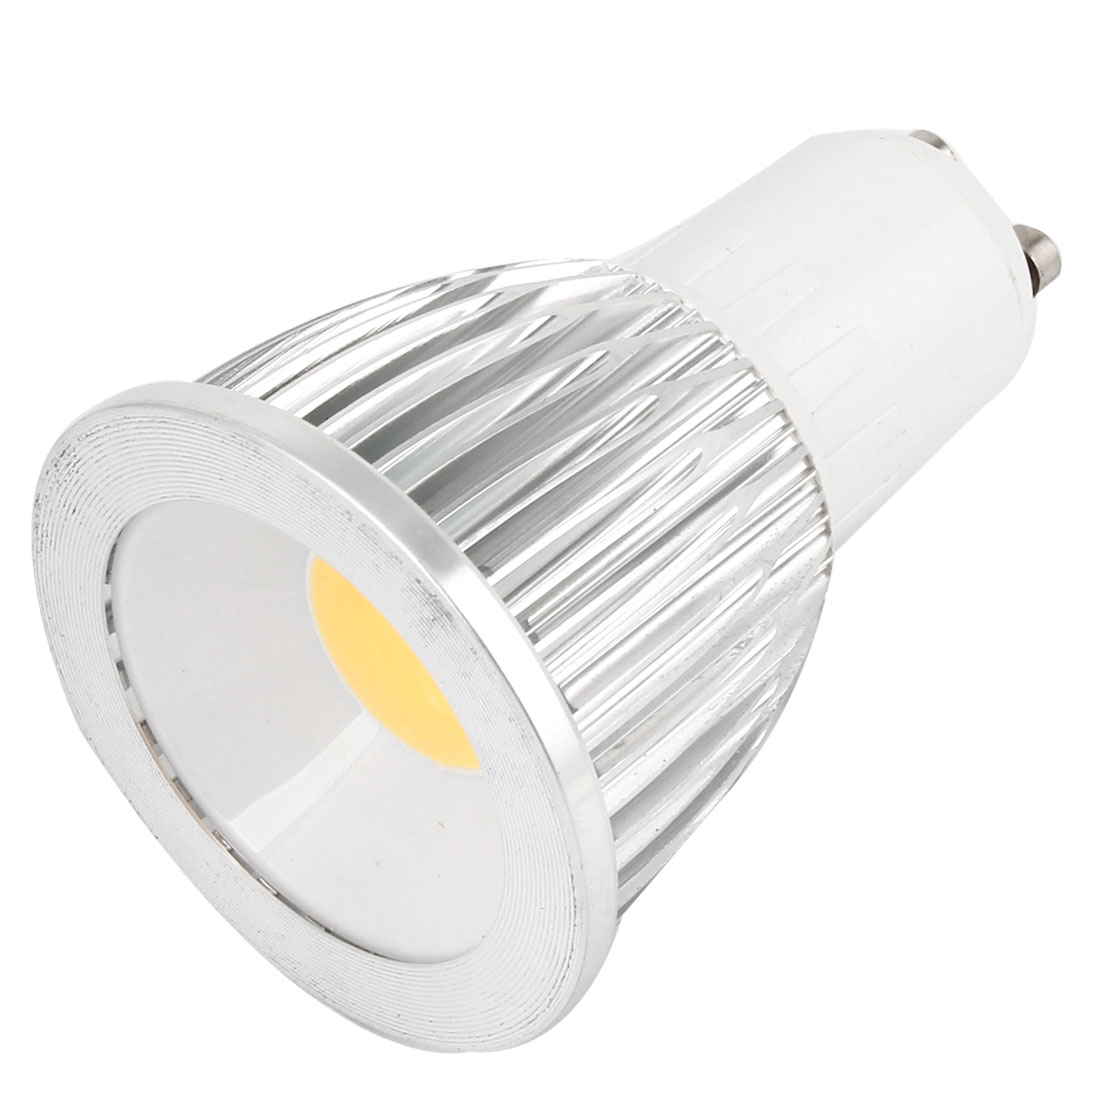 AC 85-265V 9W 600-650LM GU10 Dimmable Warm White Light COB LED Downlight